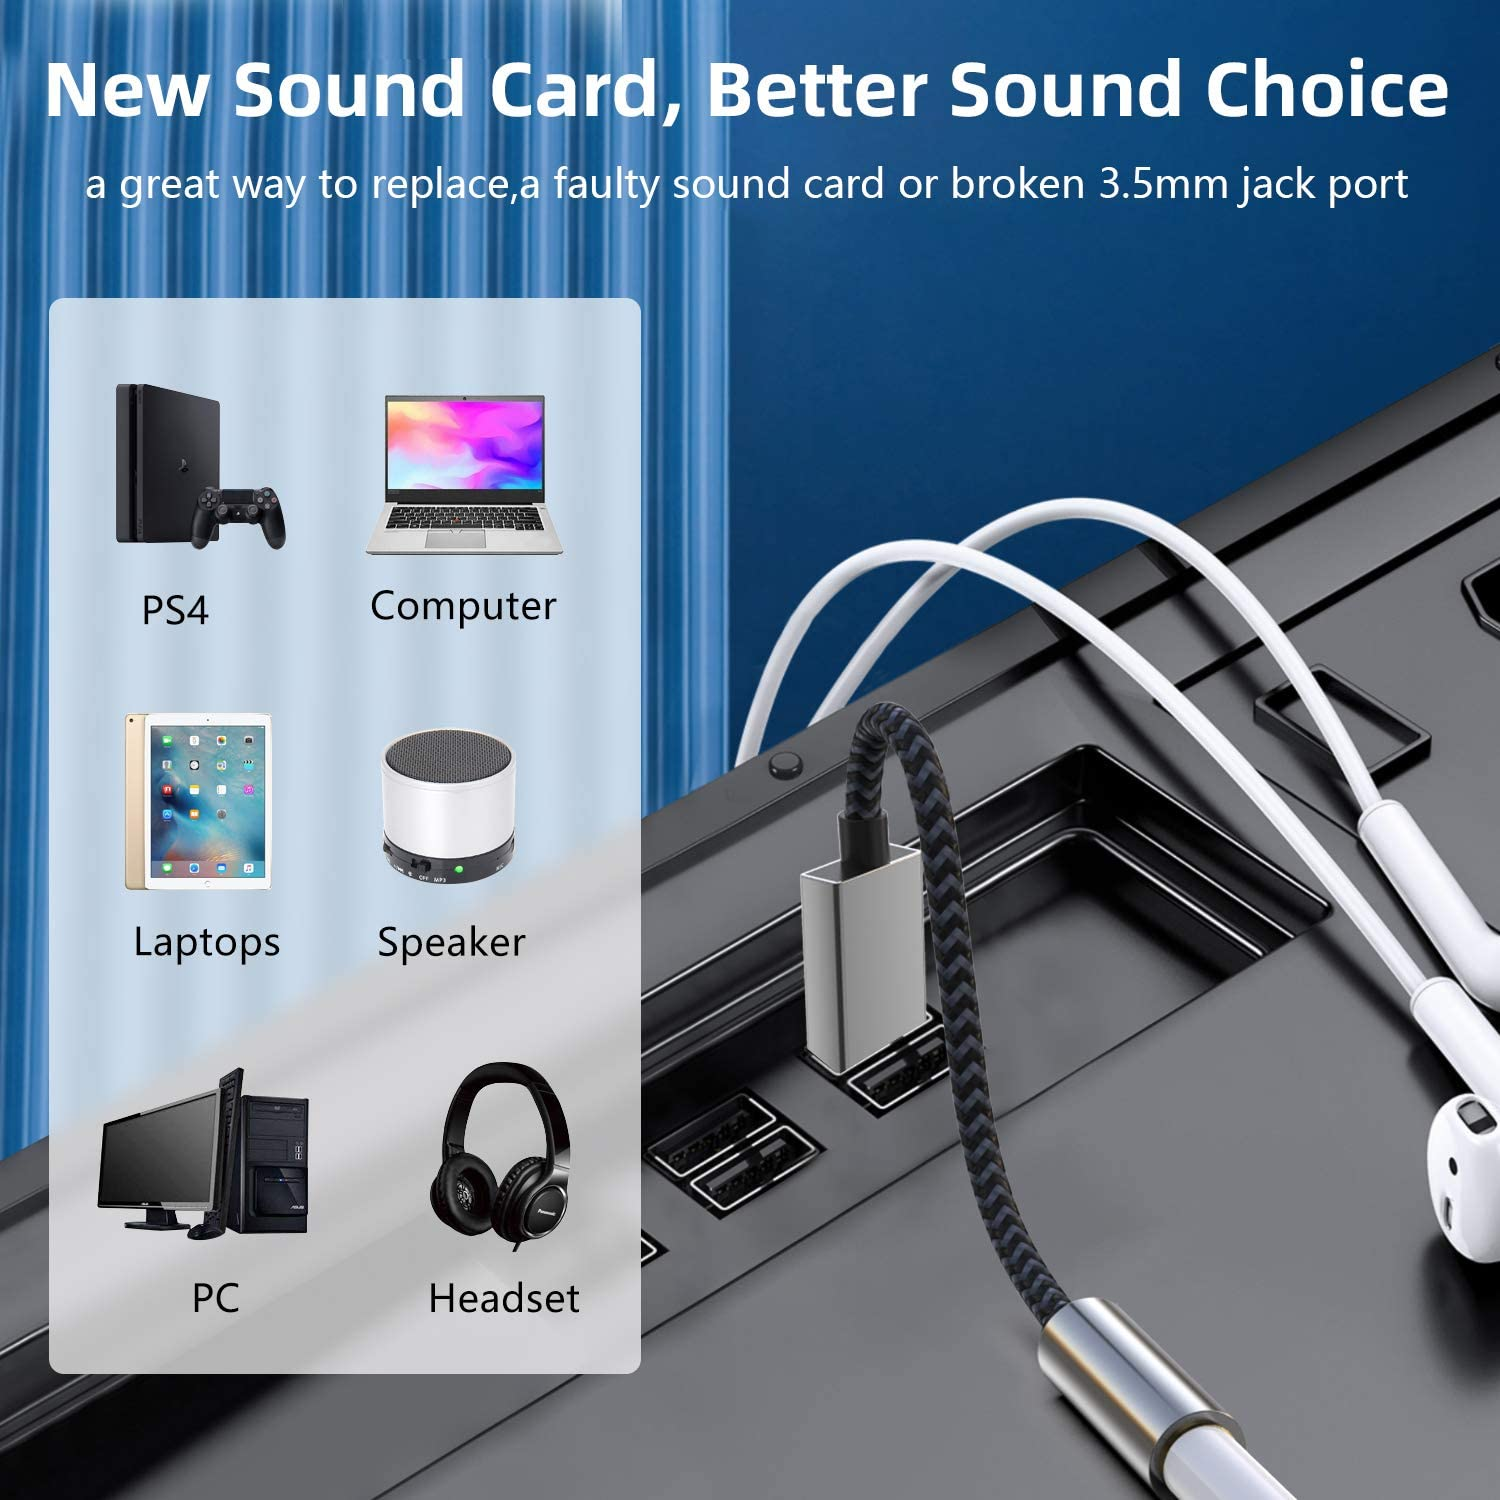 USB to Aux Cable, Morelecs USB to 3.5mm Male Cable, USB to Aux Cable with TRRS 4-Pole Mic-Supported USB to Headphone AUX Adapter Built-in Chip External Sound Card for PS4 PC and More -5FT